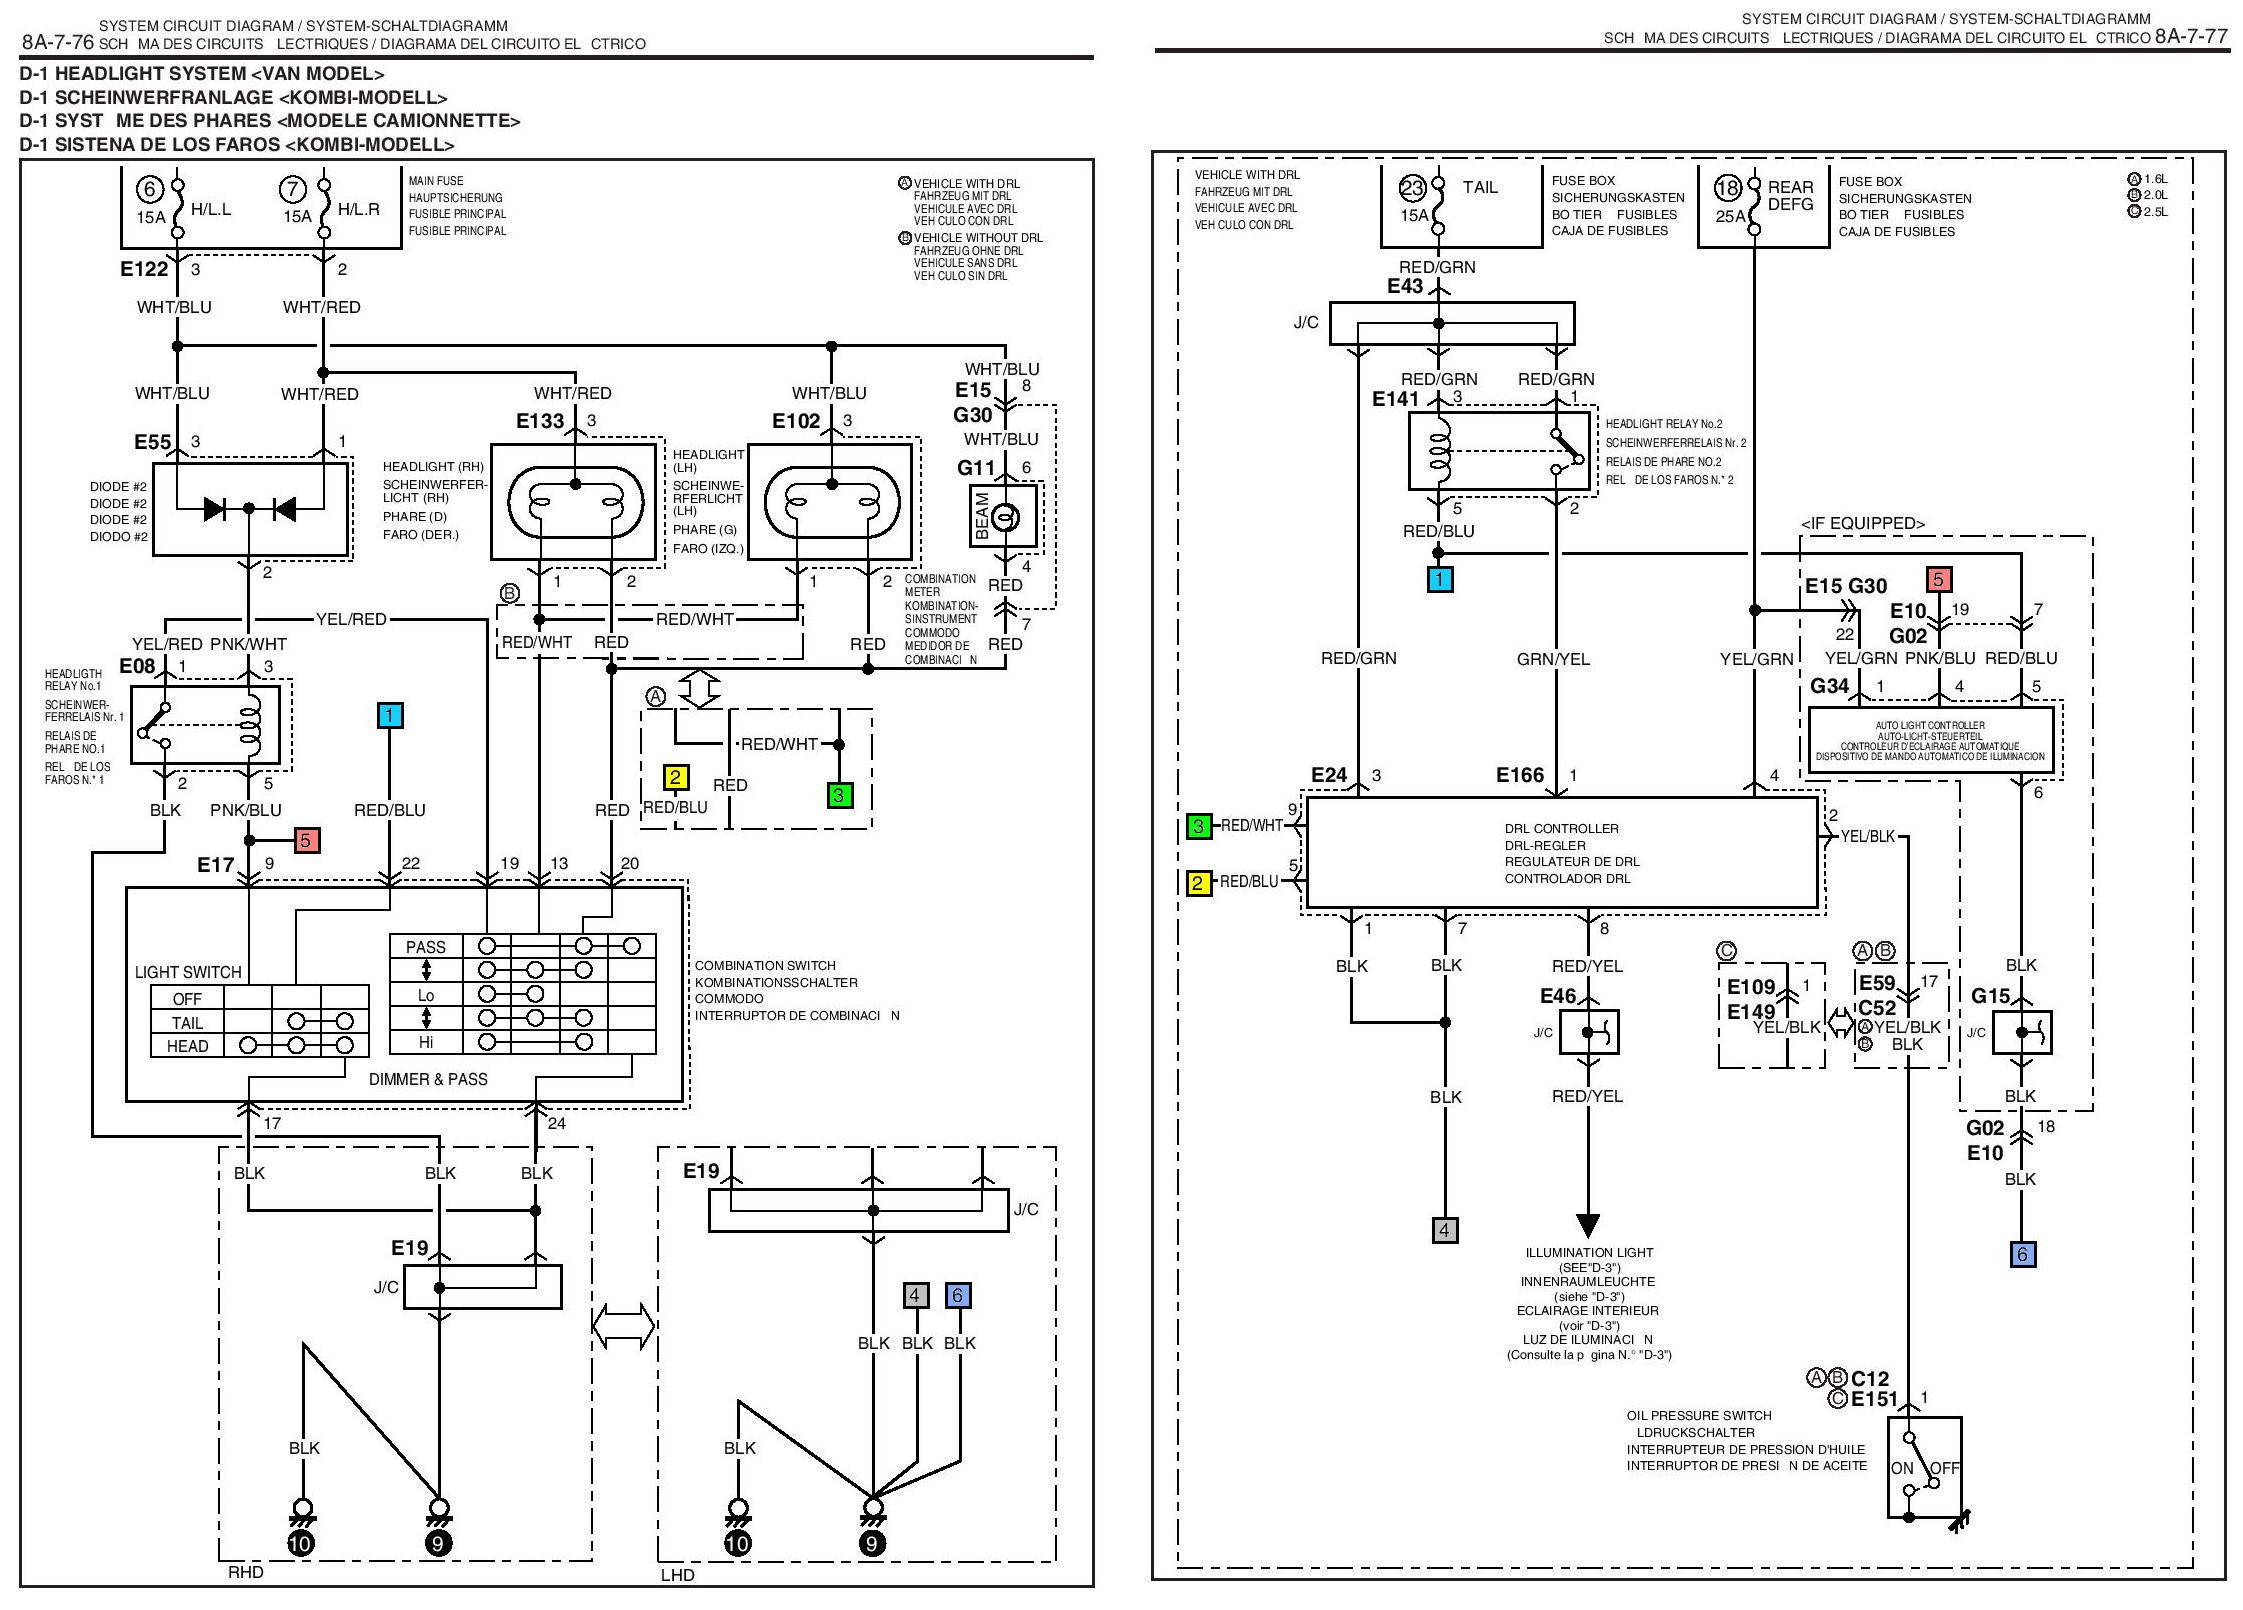 suzuki hayate wiring diagram 2003 suzuki vitara engine diagram - auto electrical wiring ... suzuki b200 wiring diagram #2